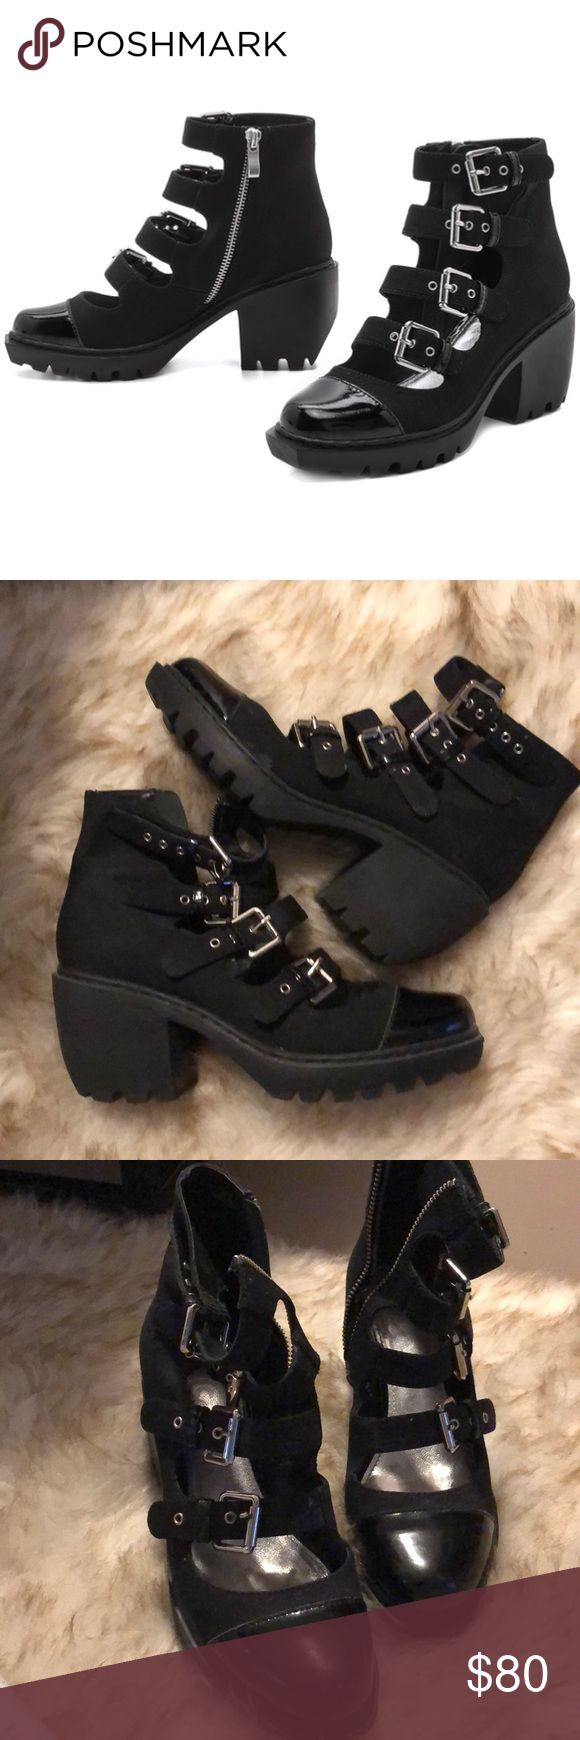 7.5 38 opening ceremony grunge buckle bootie boots Super cute just too small for me!  These are a 7.5 but fit more like a 7 Zipper pull is missing from the right foot. Zipper still works you just have to do it manually. Easy fix at a repair shop Opening Ceremony Shoes Ankle Boots & Booties